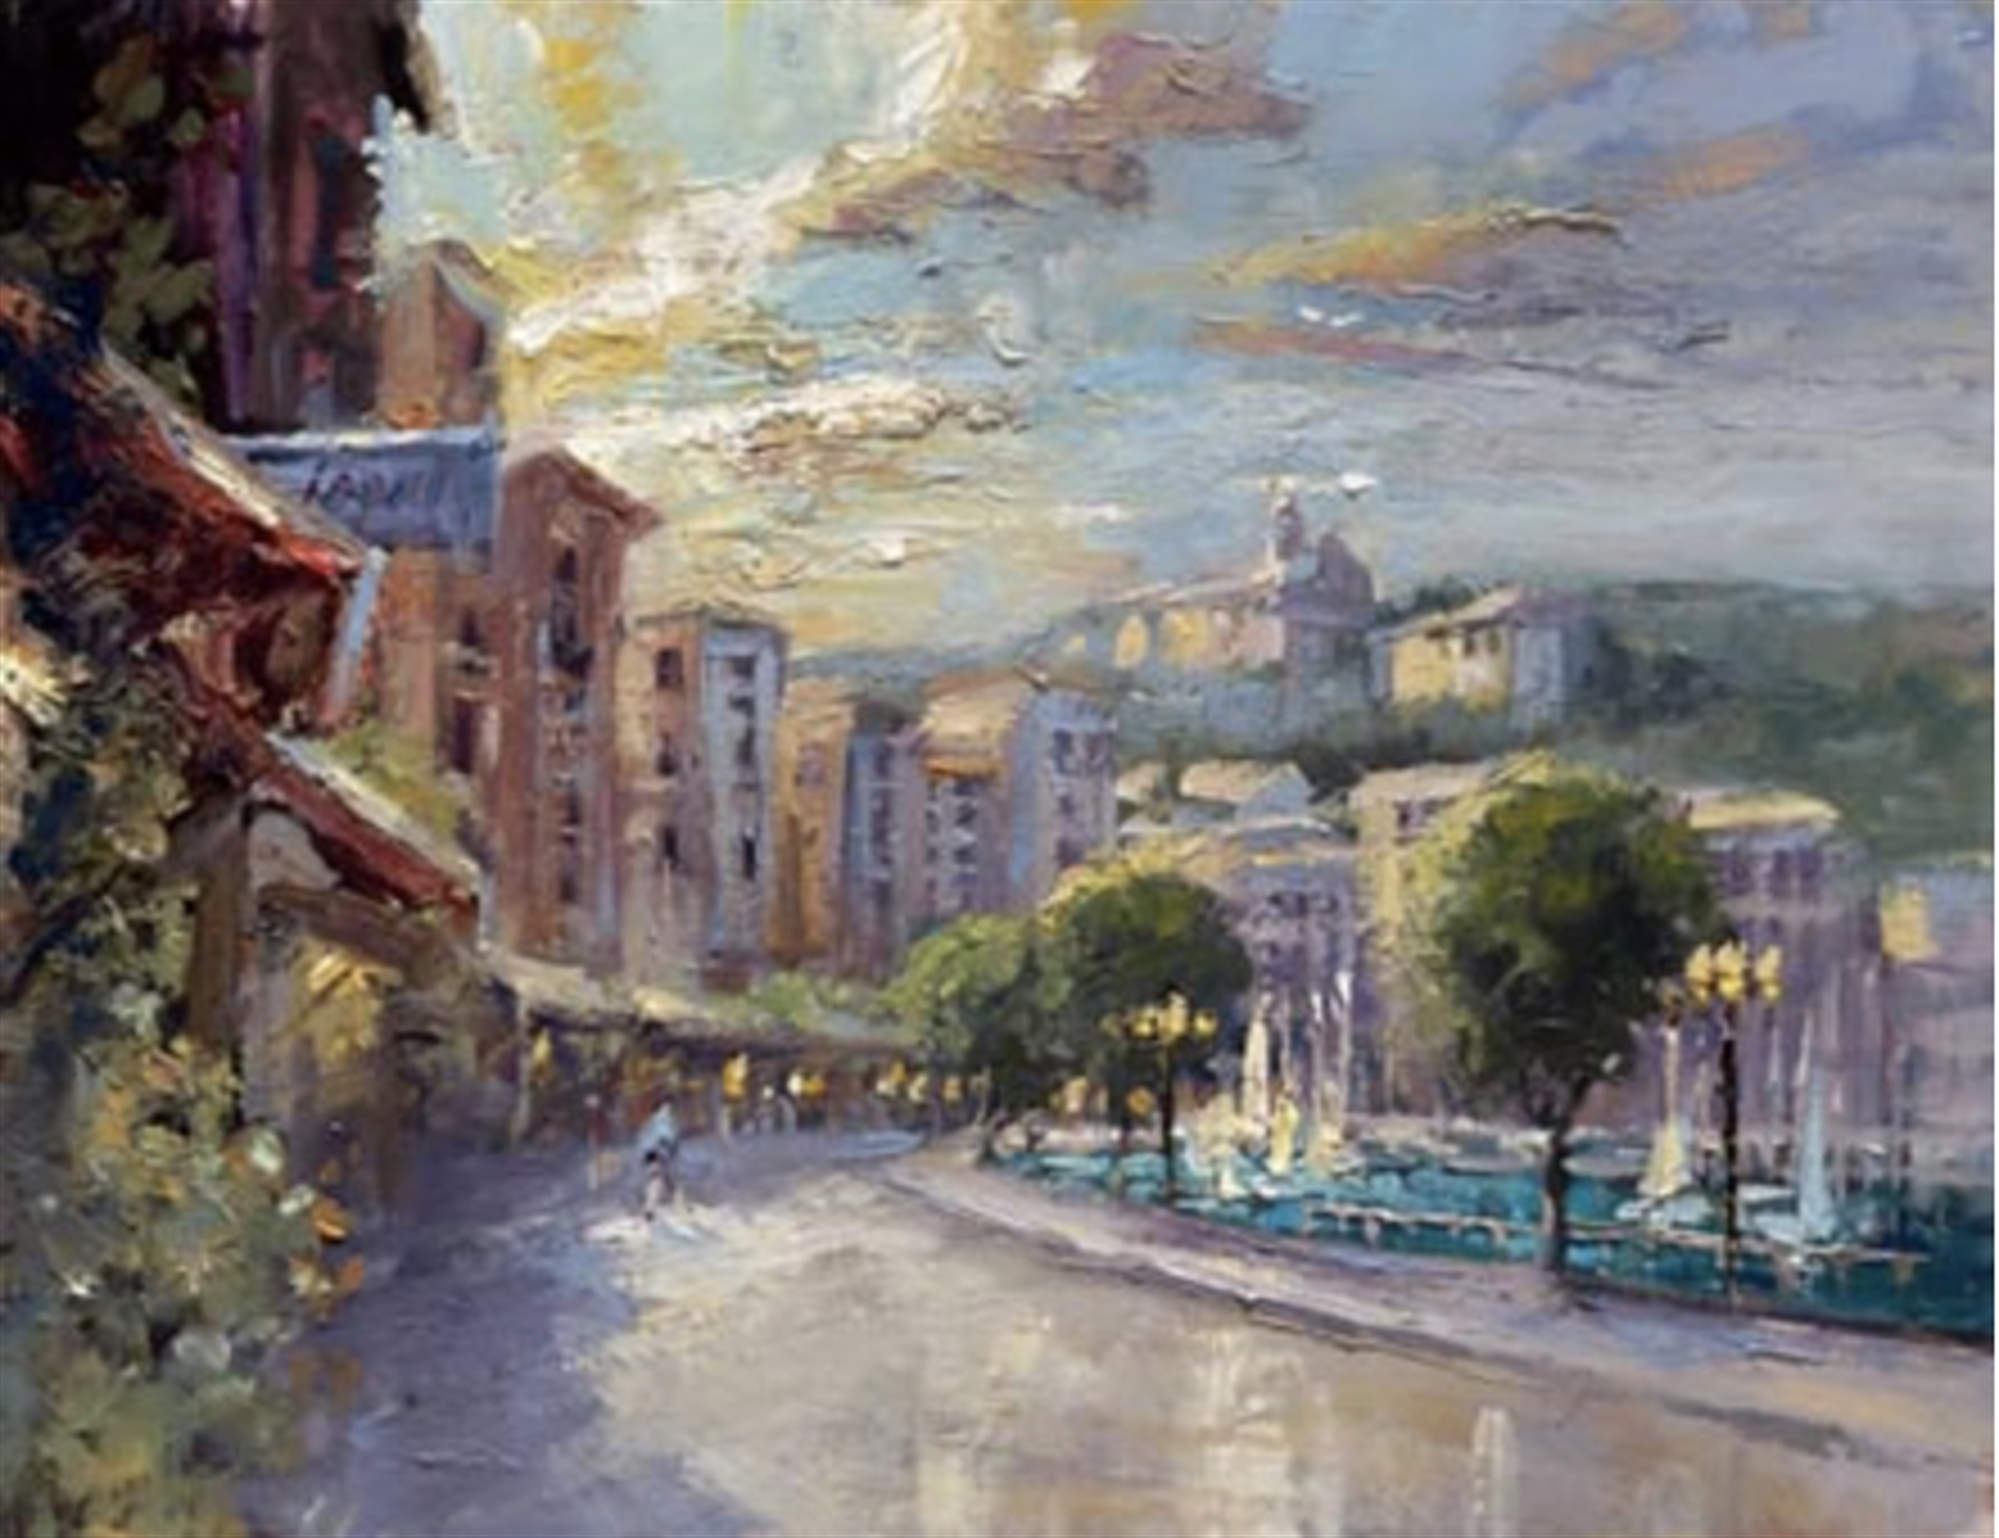 Impressions of St. Jean by Steven Quartly